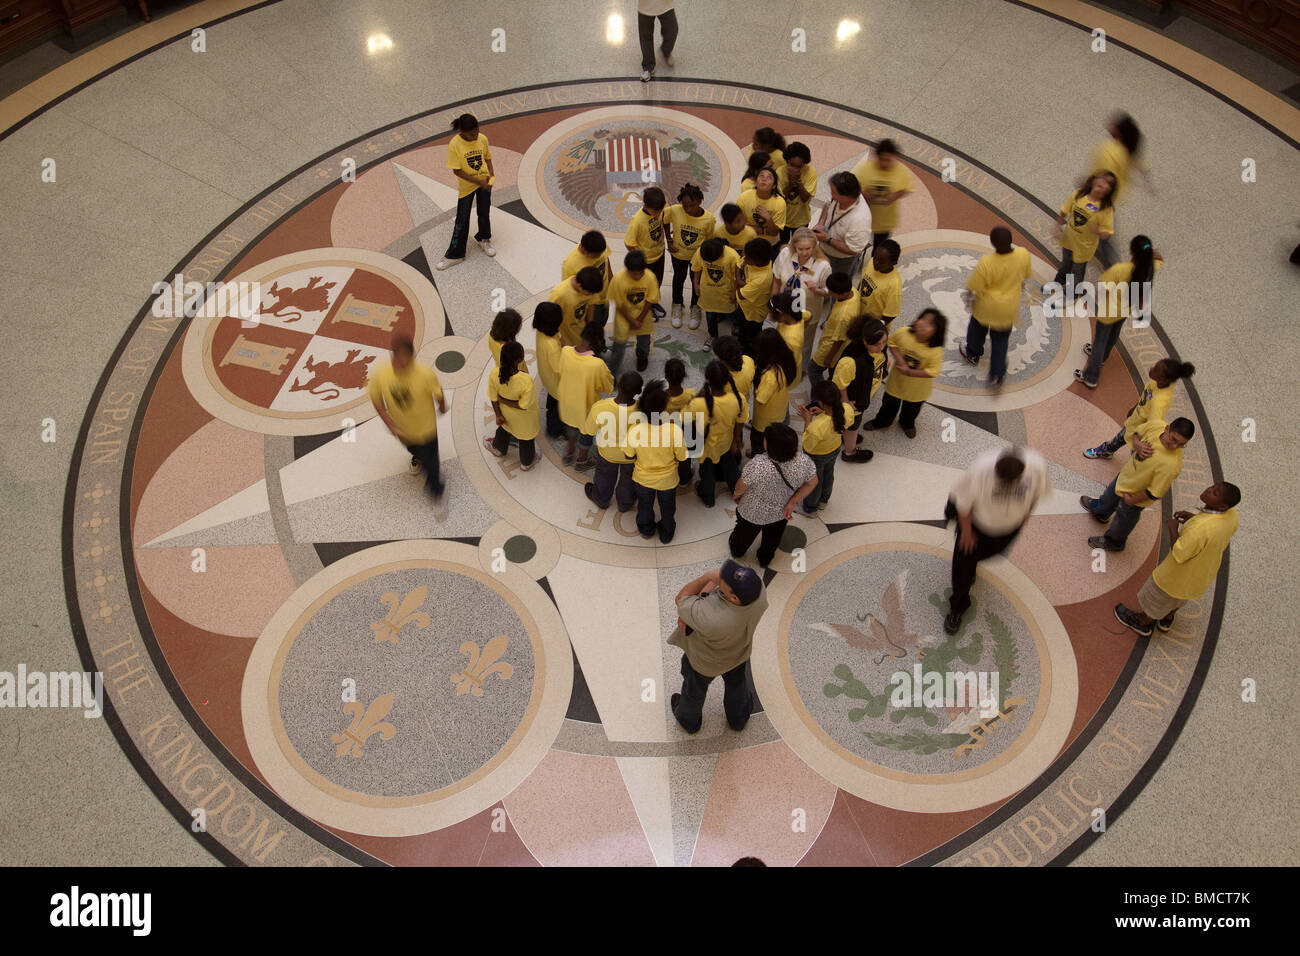 School children looking at middle seal on floor of Texas state capitol building rotunda in Austin - Stock Image